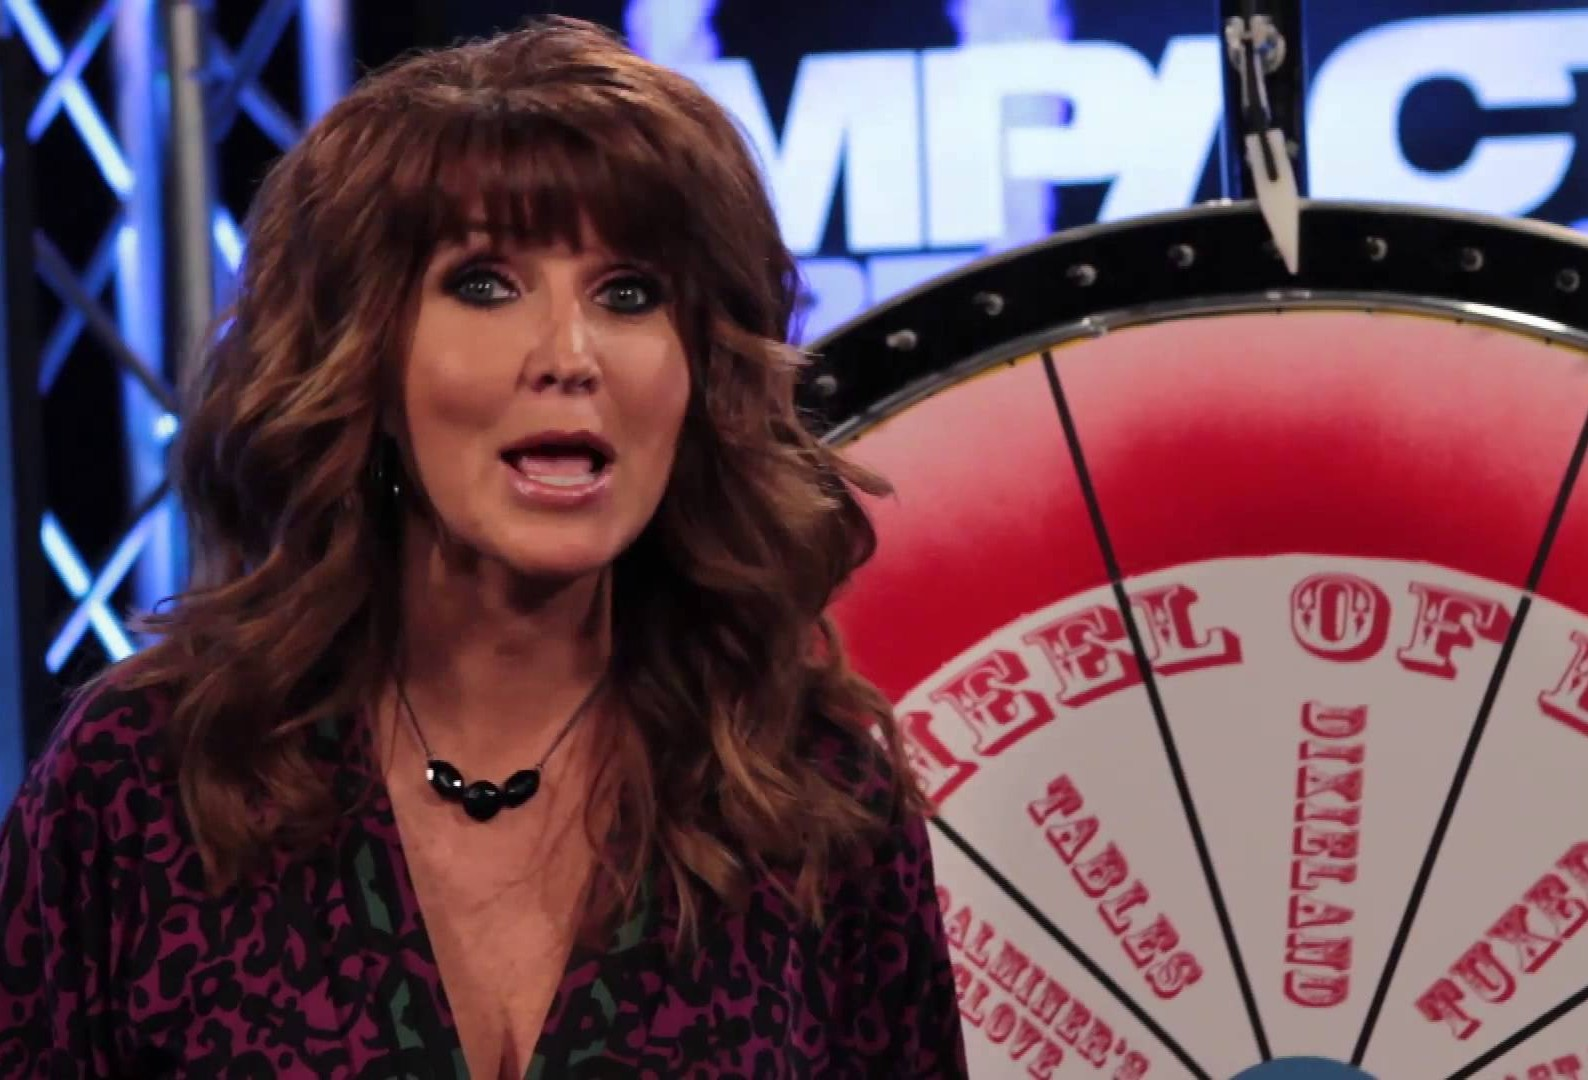 dixie carter instagramdixie carter twitter, dixie carter interview, dixie carter tna, dixie carter the hand that feeds, dixie carter height, dixie carter actress, dixie carter table, dixie carter husband, dixie carter instagram, dixie carter theme, dixie carter net worth, dixie carter death, dixie carter wiki, dixie carter performing arts center, dixie carter tna net worth, dixie carter how great thou art, dixie carter plastic surgery